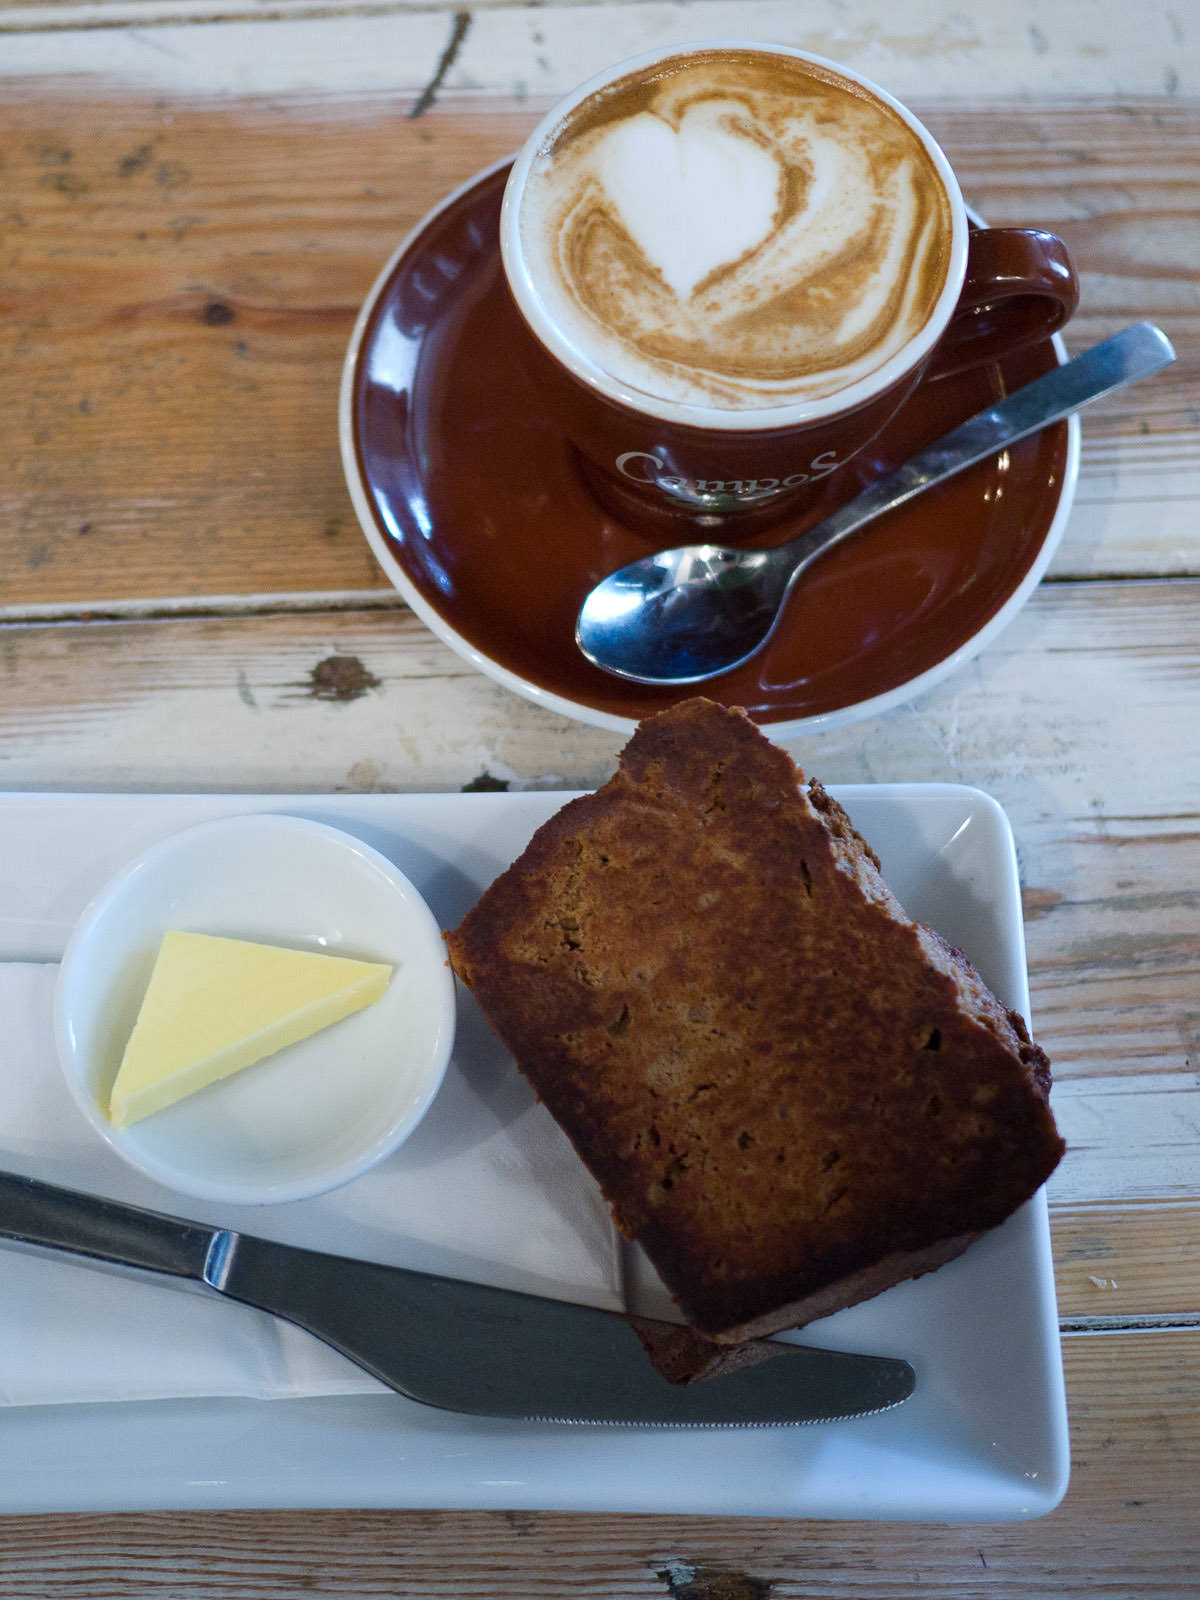 Banana bread with butter and my second soy flat white